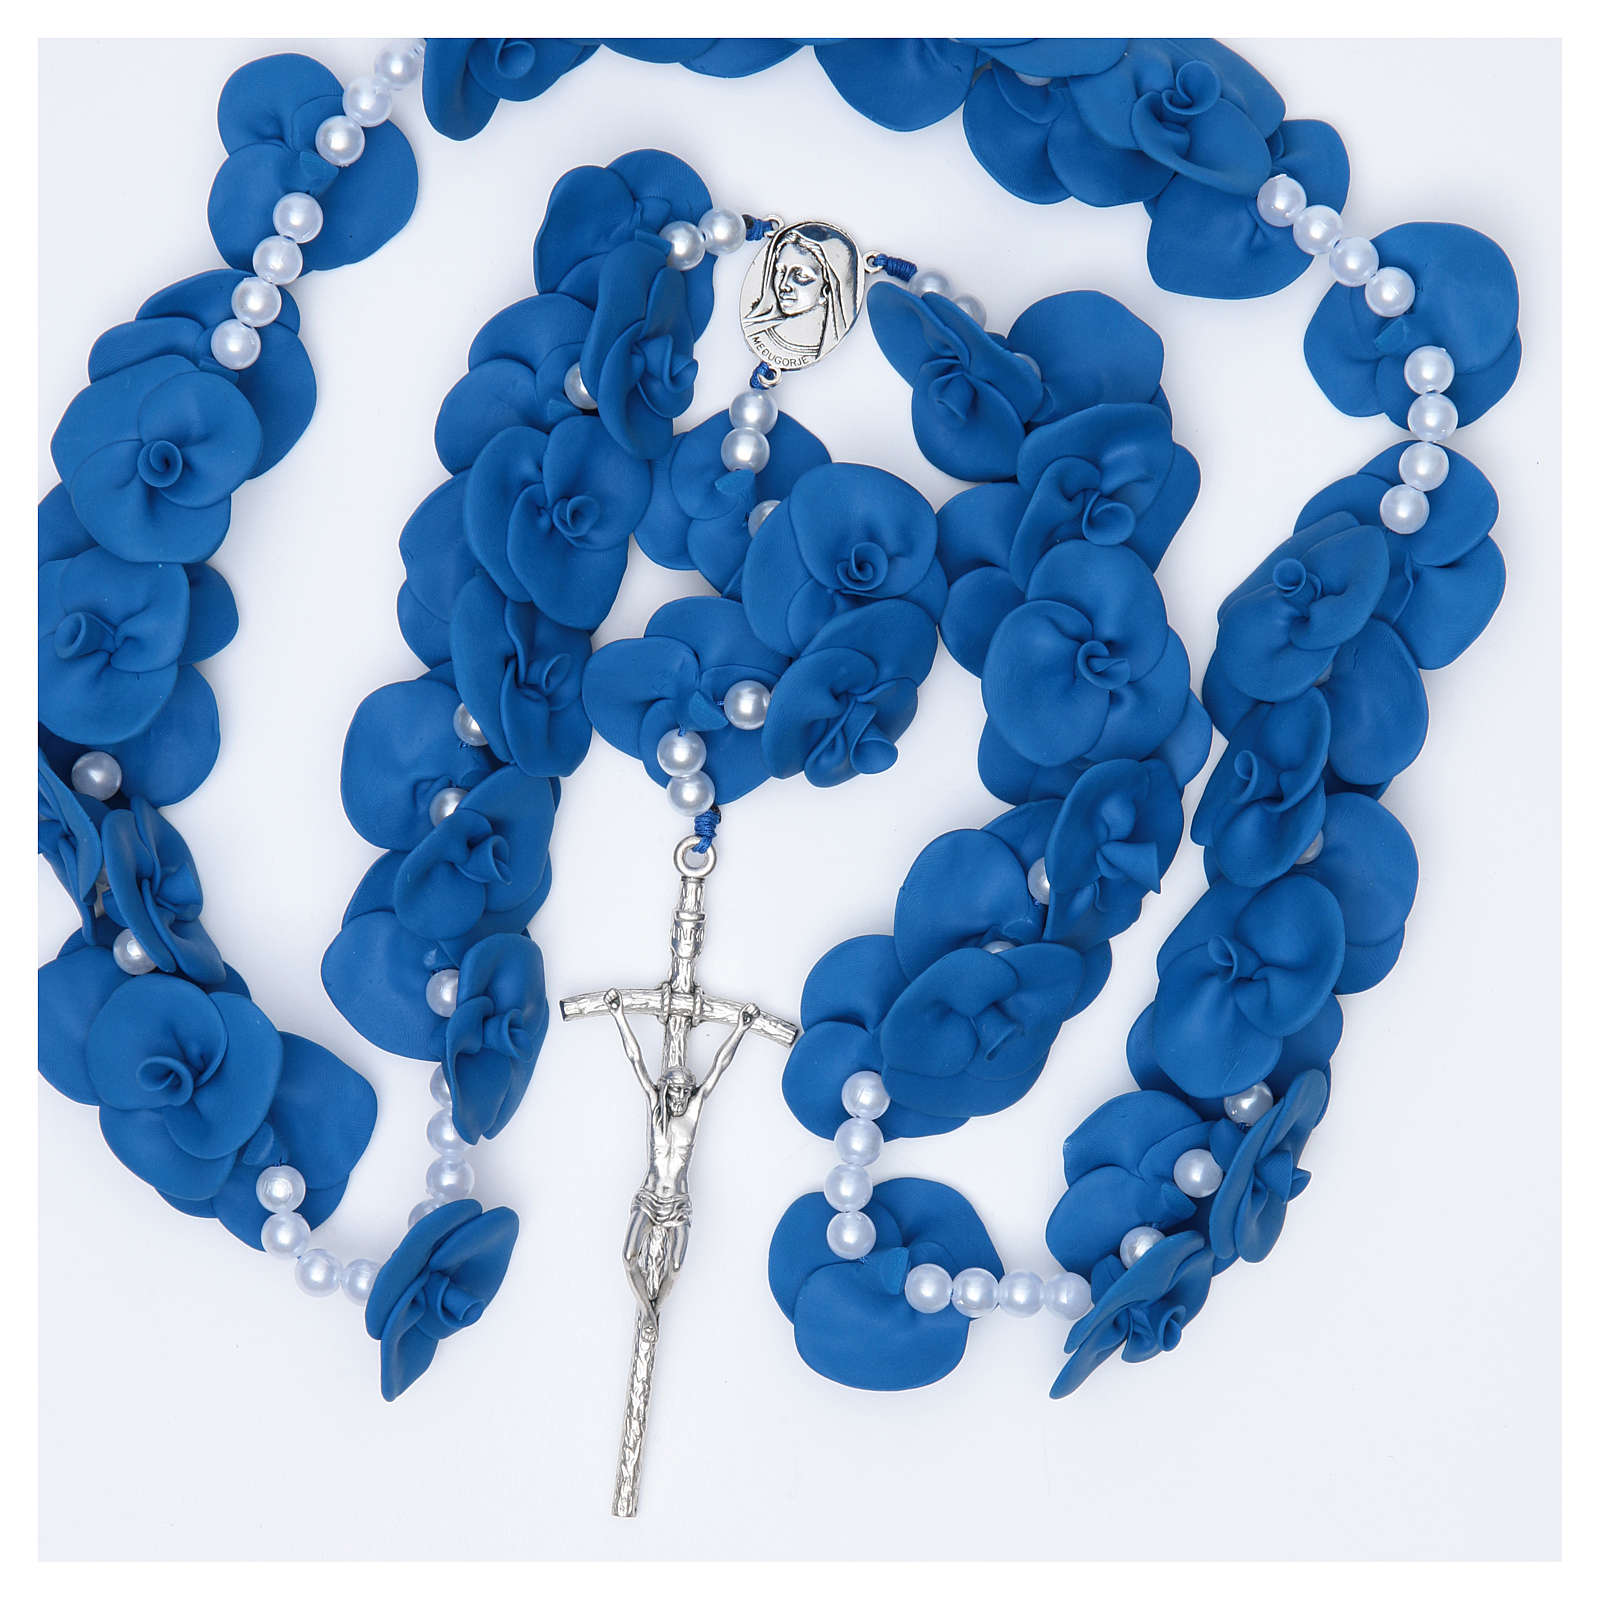 Headboard Medjugorje rosary with blue roses 4